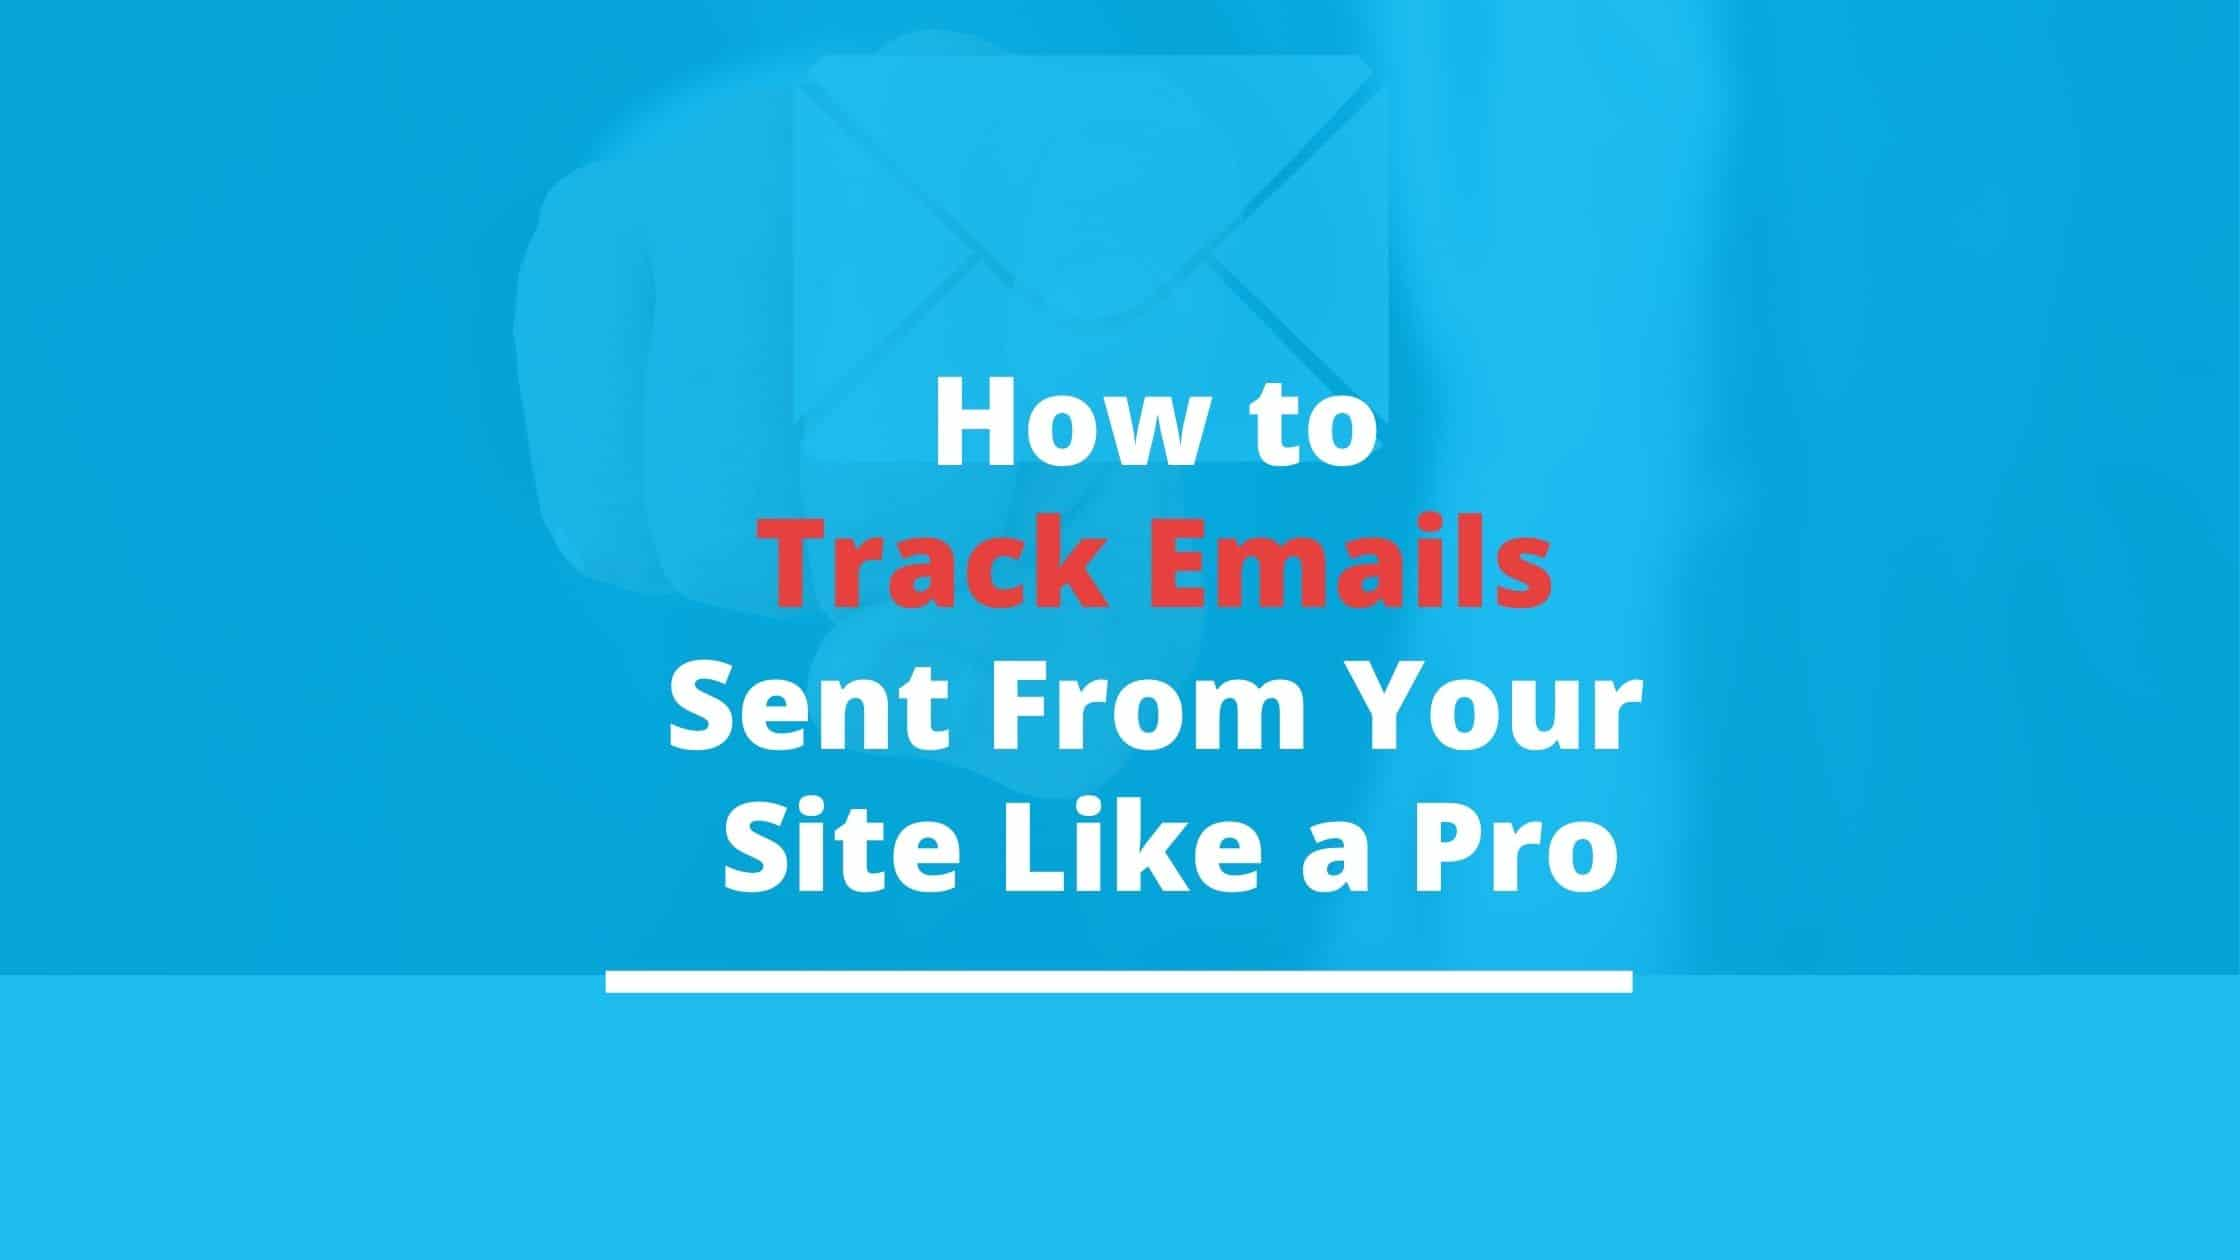 How to track emails sent from your site like a pro?